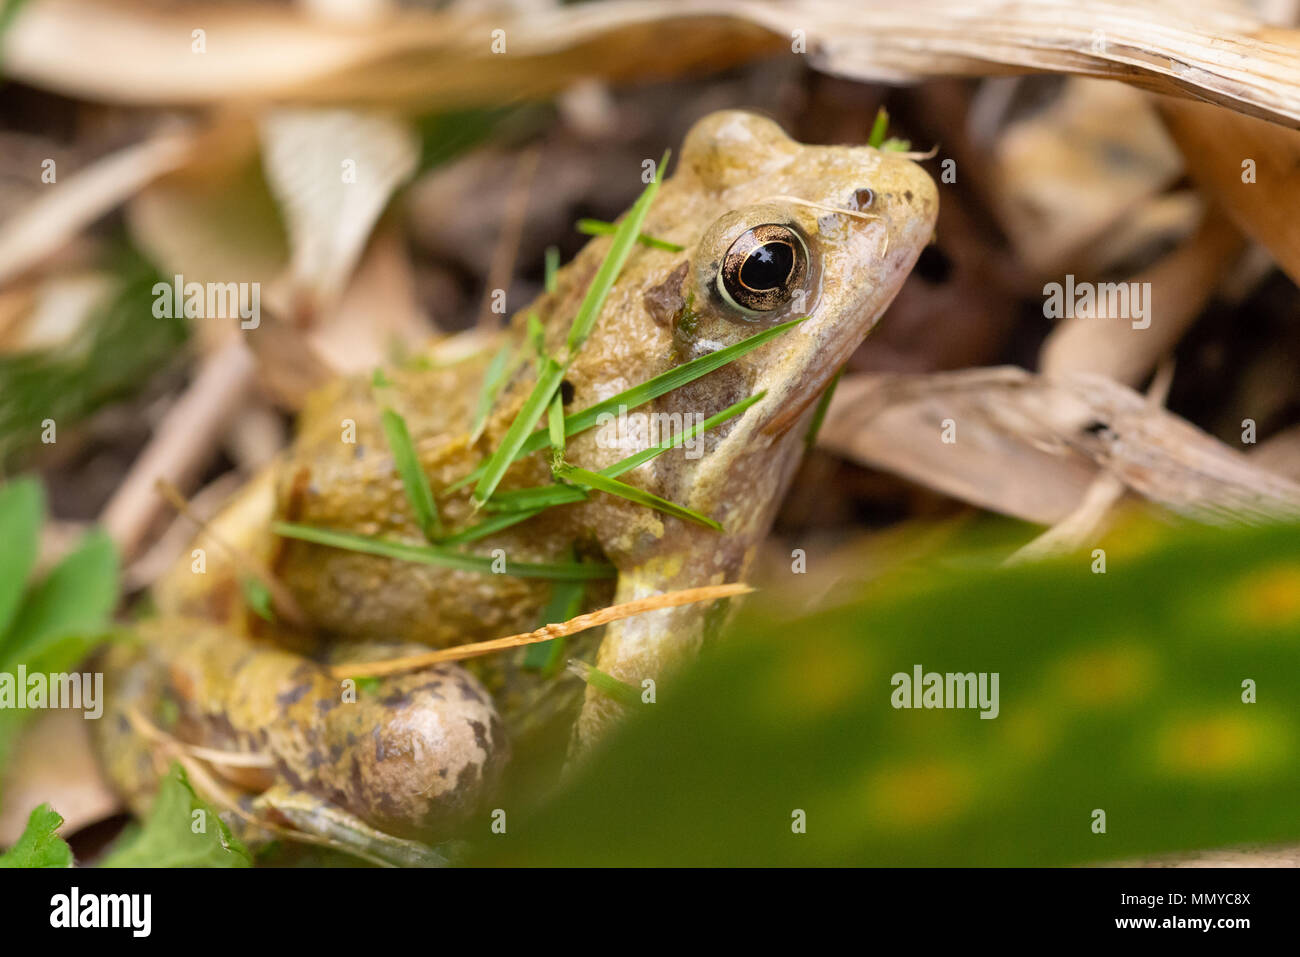 A common frog covered in grass clippings after narrowly avoiding a garden lawn mower, England. - Stock Image